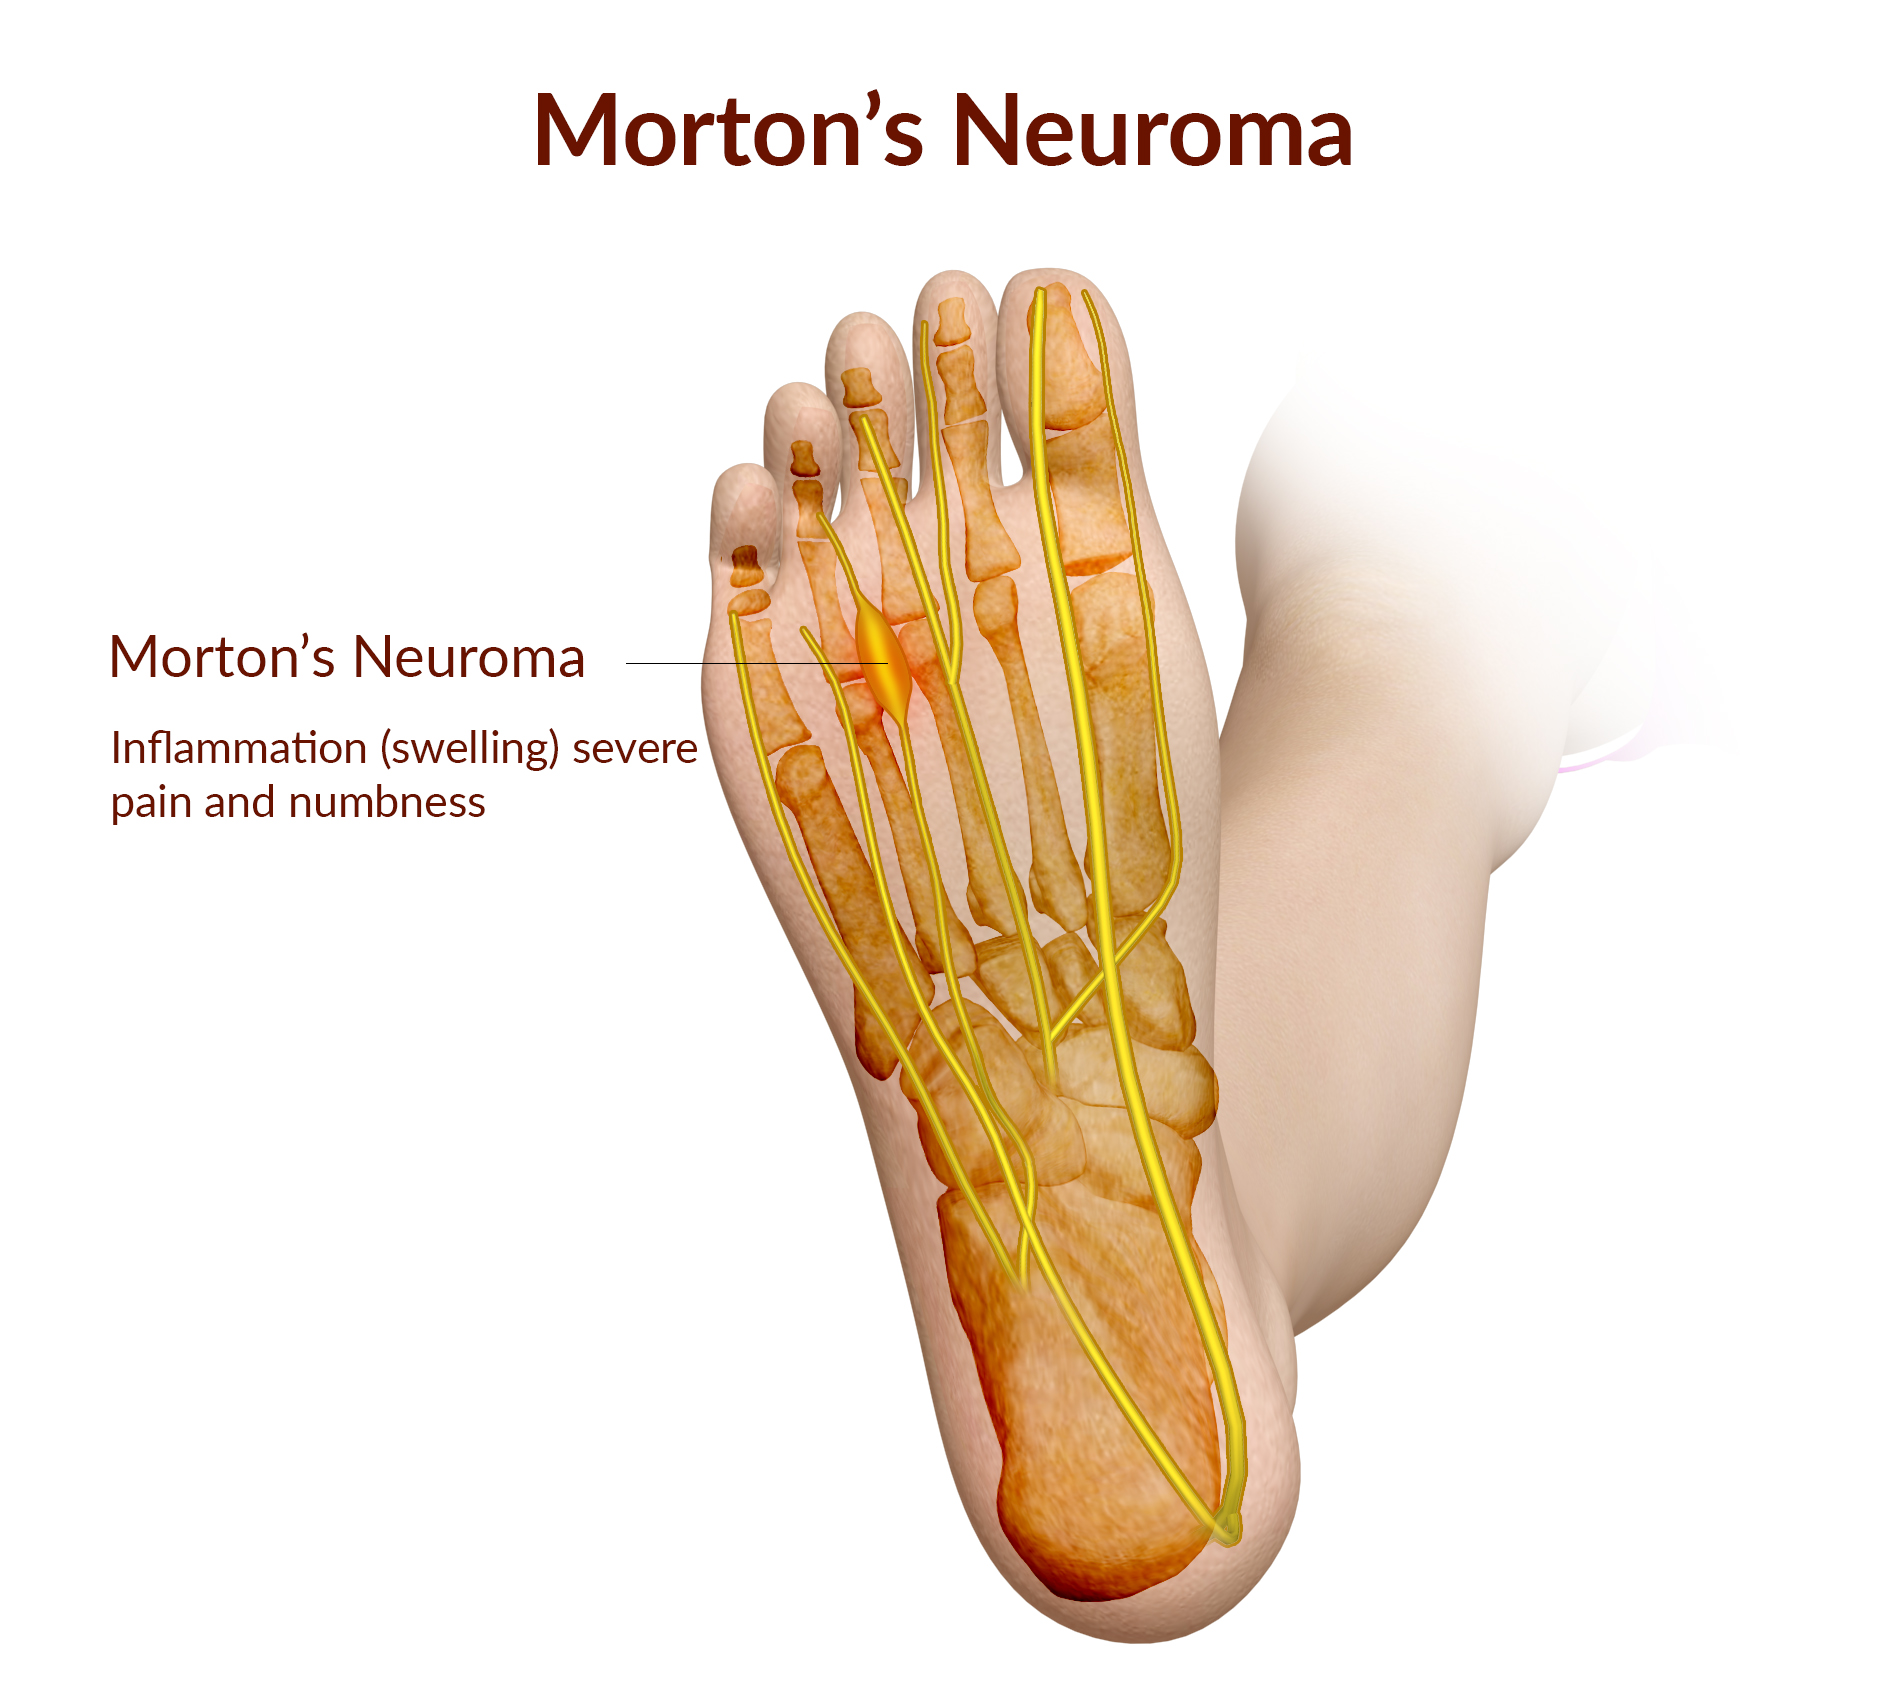 MORTONS-NEUROMA-WITH LABELS.jpg